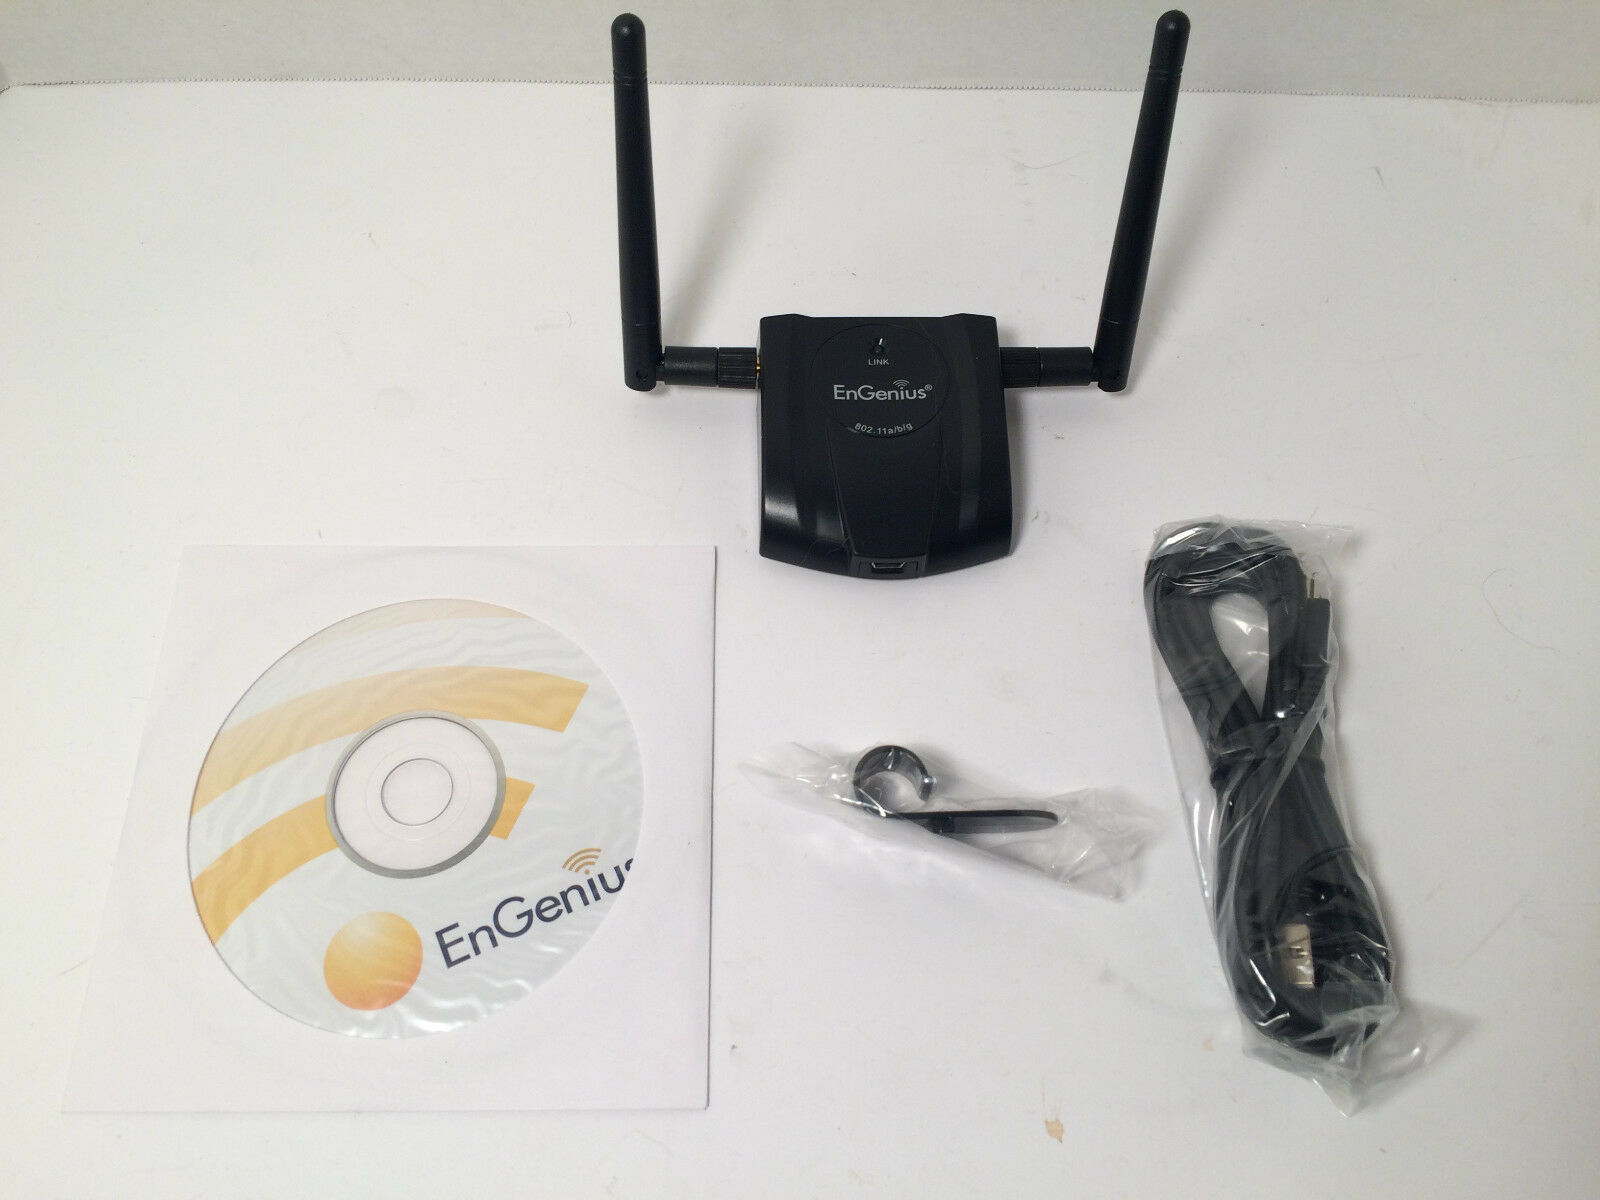 ENGENIUS EUB-362 WIRELESS ADAPTER DRIVER DOWNLOAD